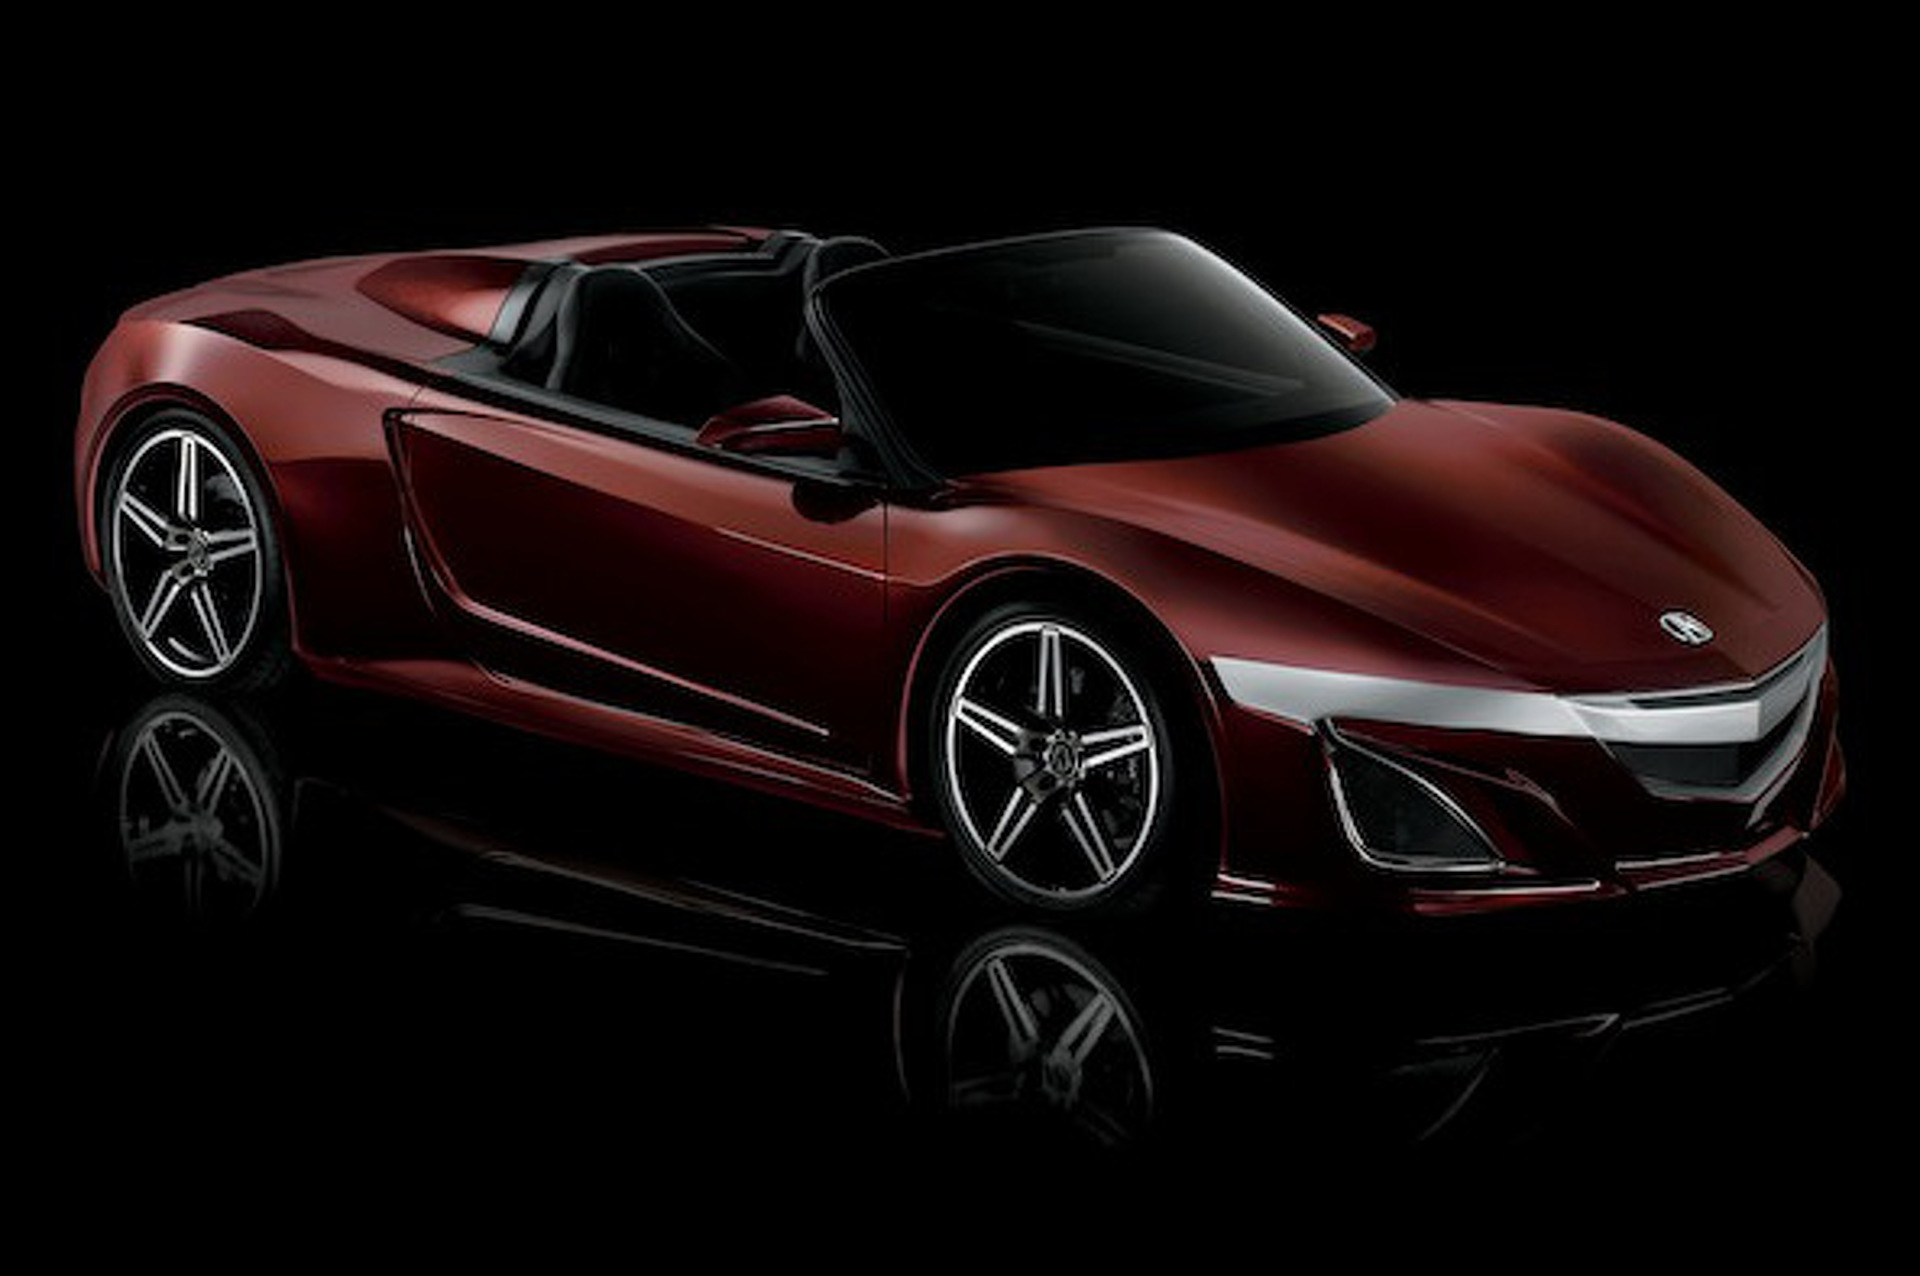 Acura NSX Roadster Already in the Works